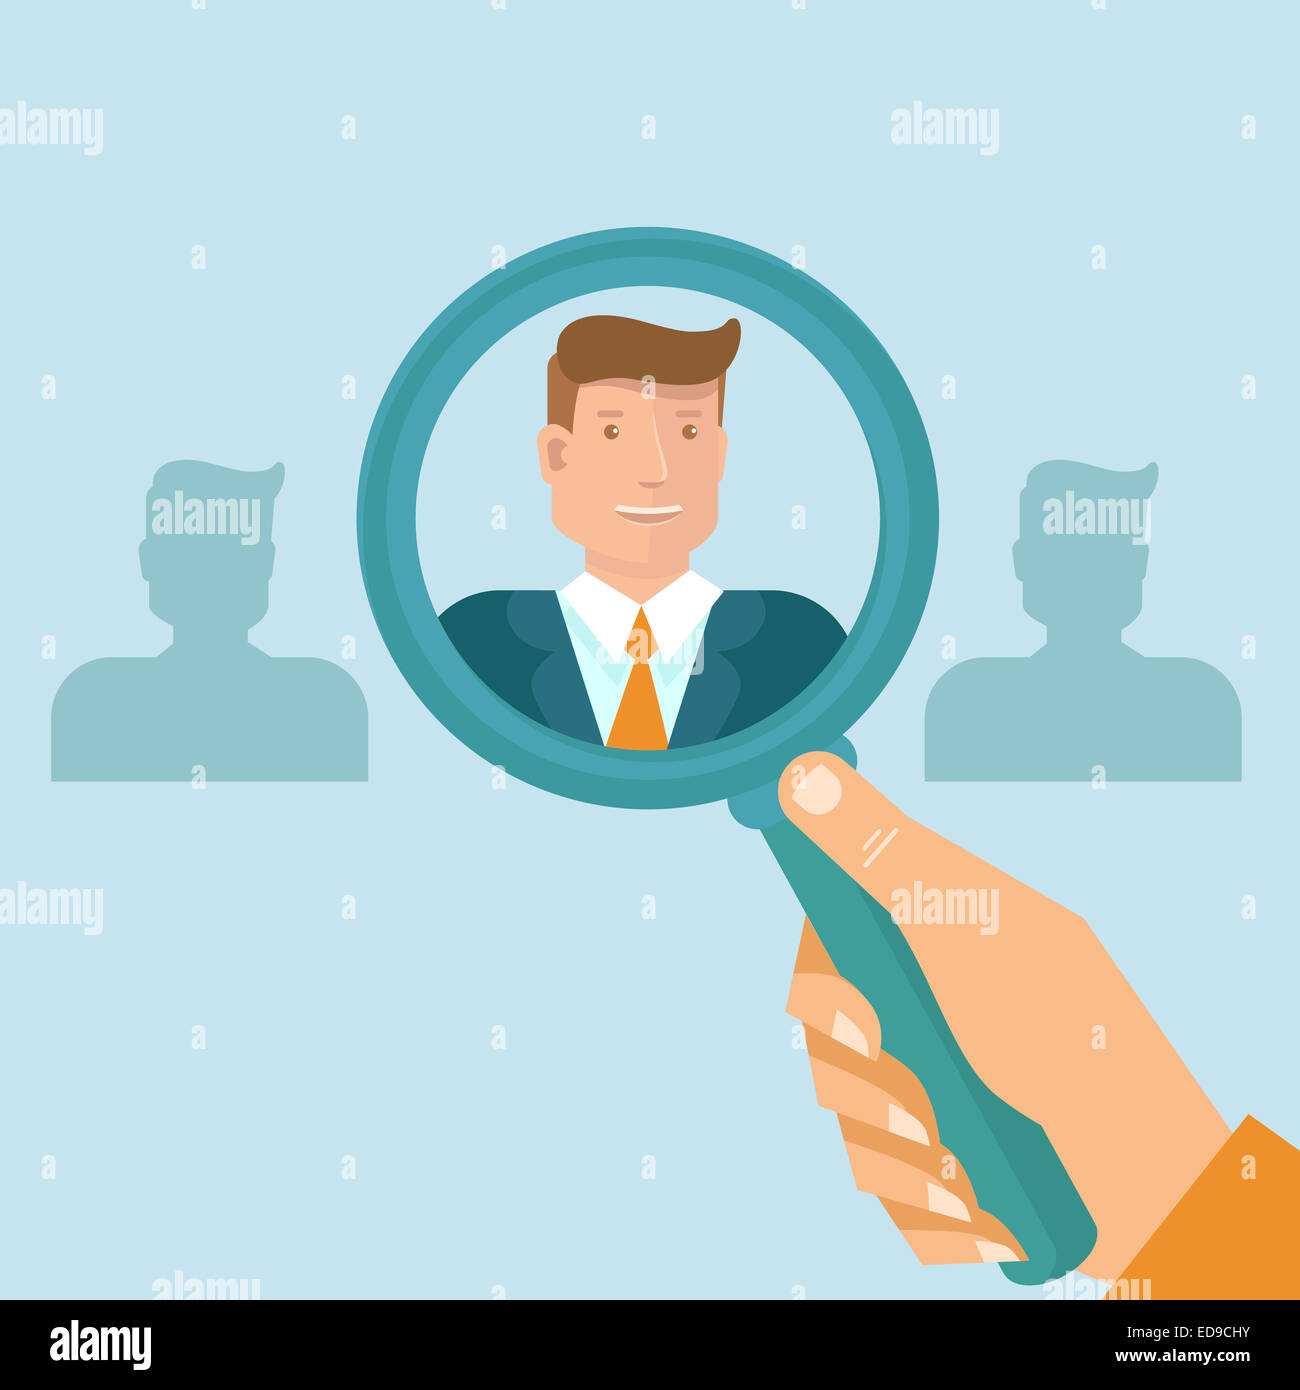 Human resources - head hunter searching for professional for a vacancy - Stock Image